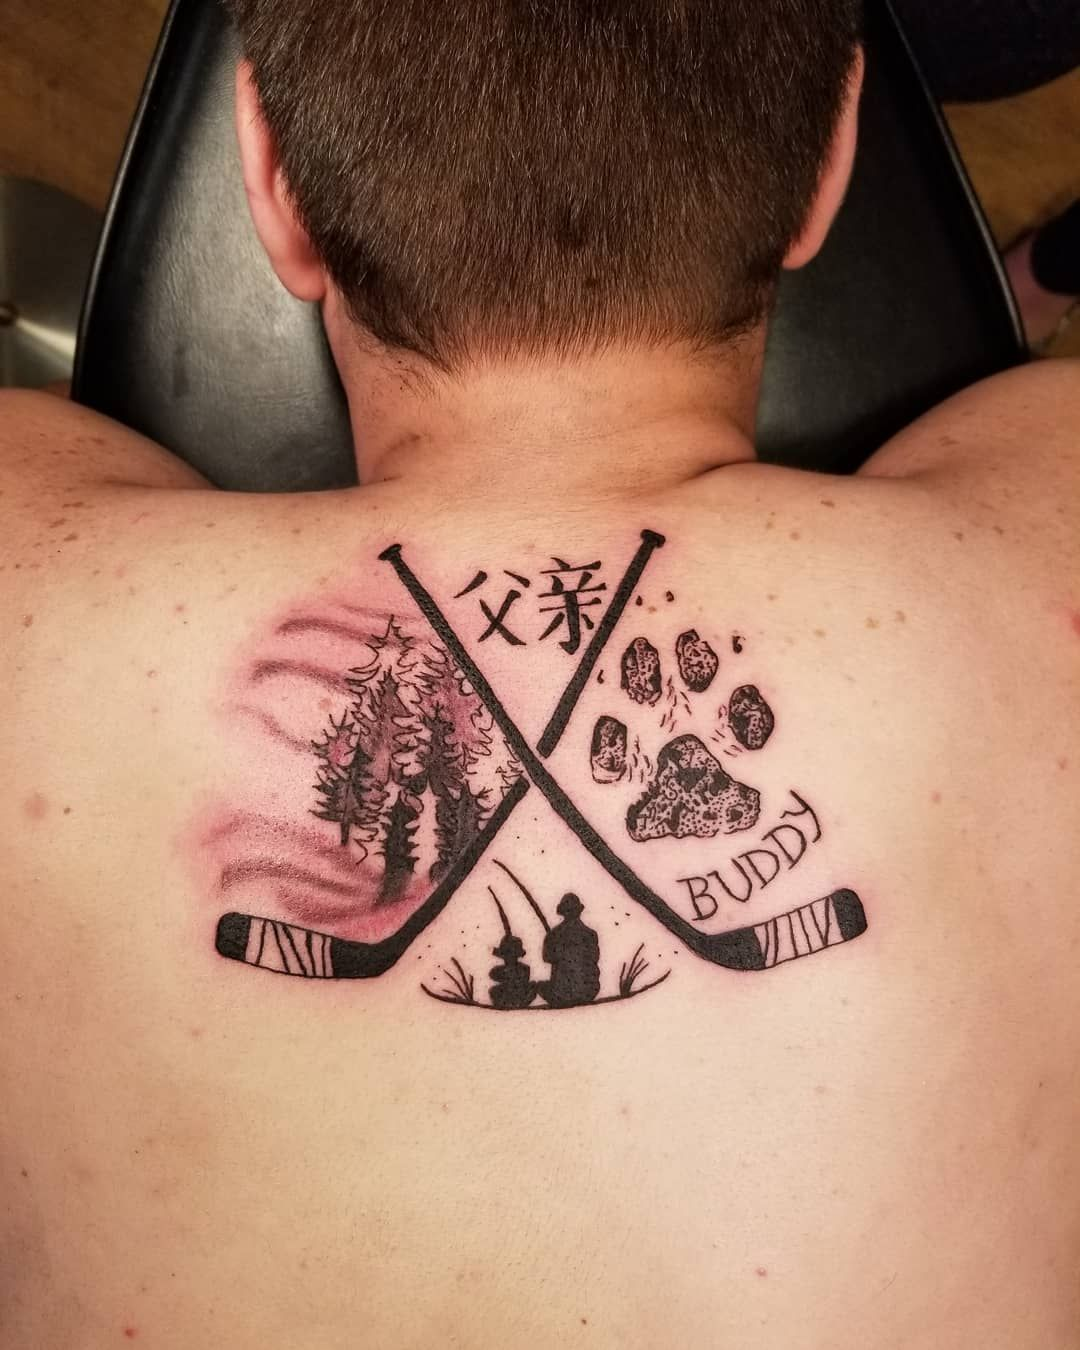 New Tattoo That Something So Small And Simple Can Be So Beautiful Hockey Hockeyfan Hockeylove Small Tattoos Hairstylist Tattoos Hockey Tattoo